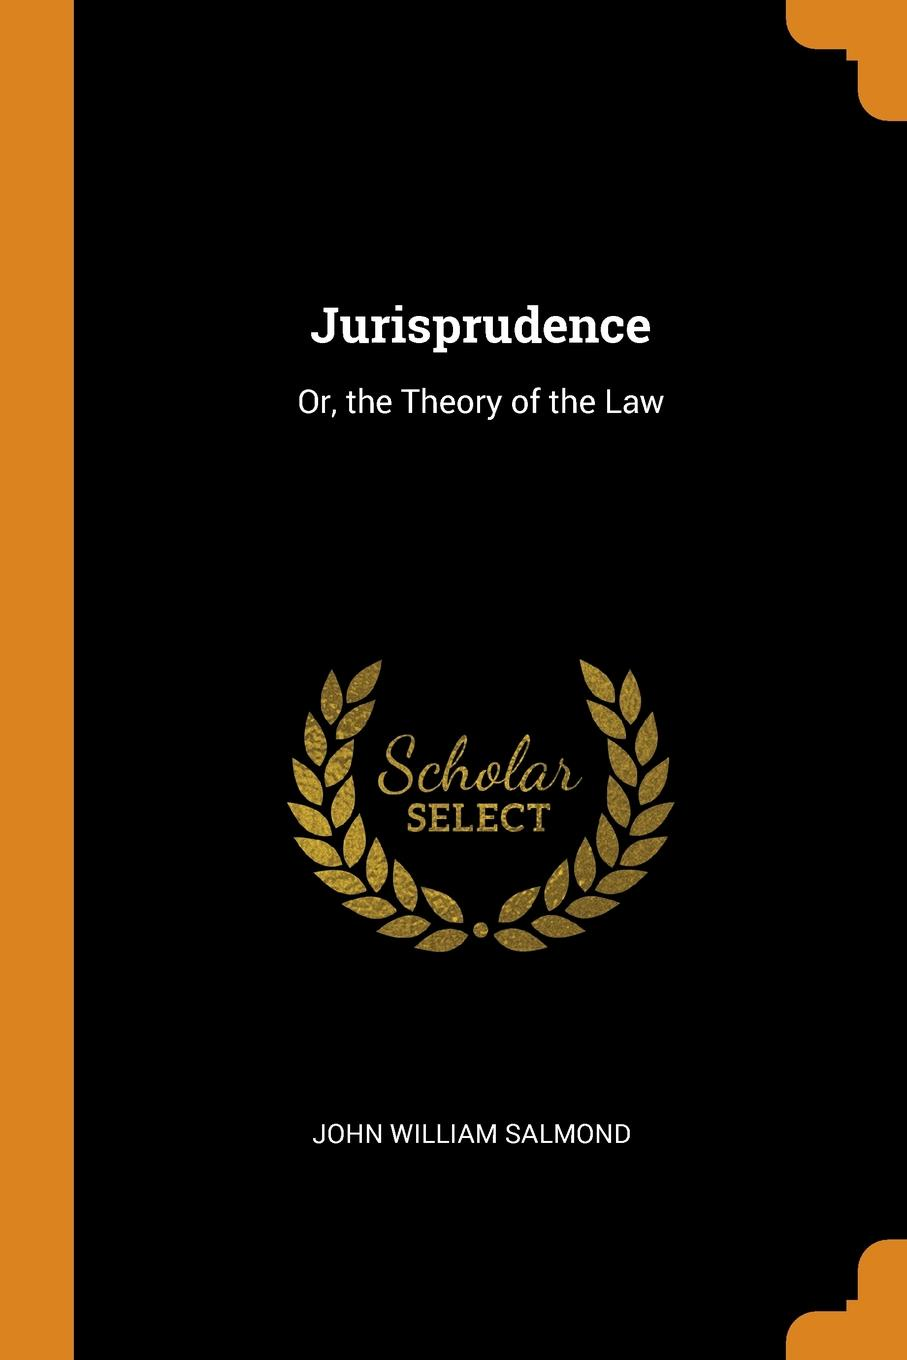 Jurisprudence. Or, the Theory of the Law. John William Salmond